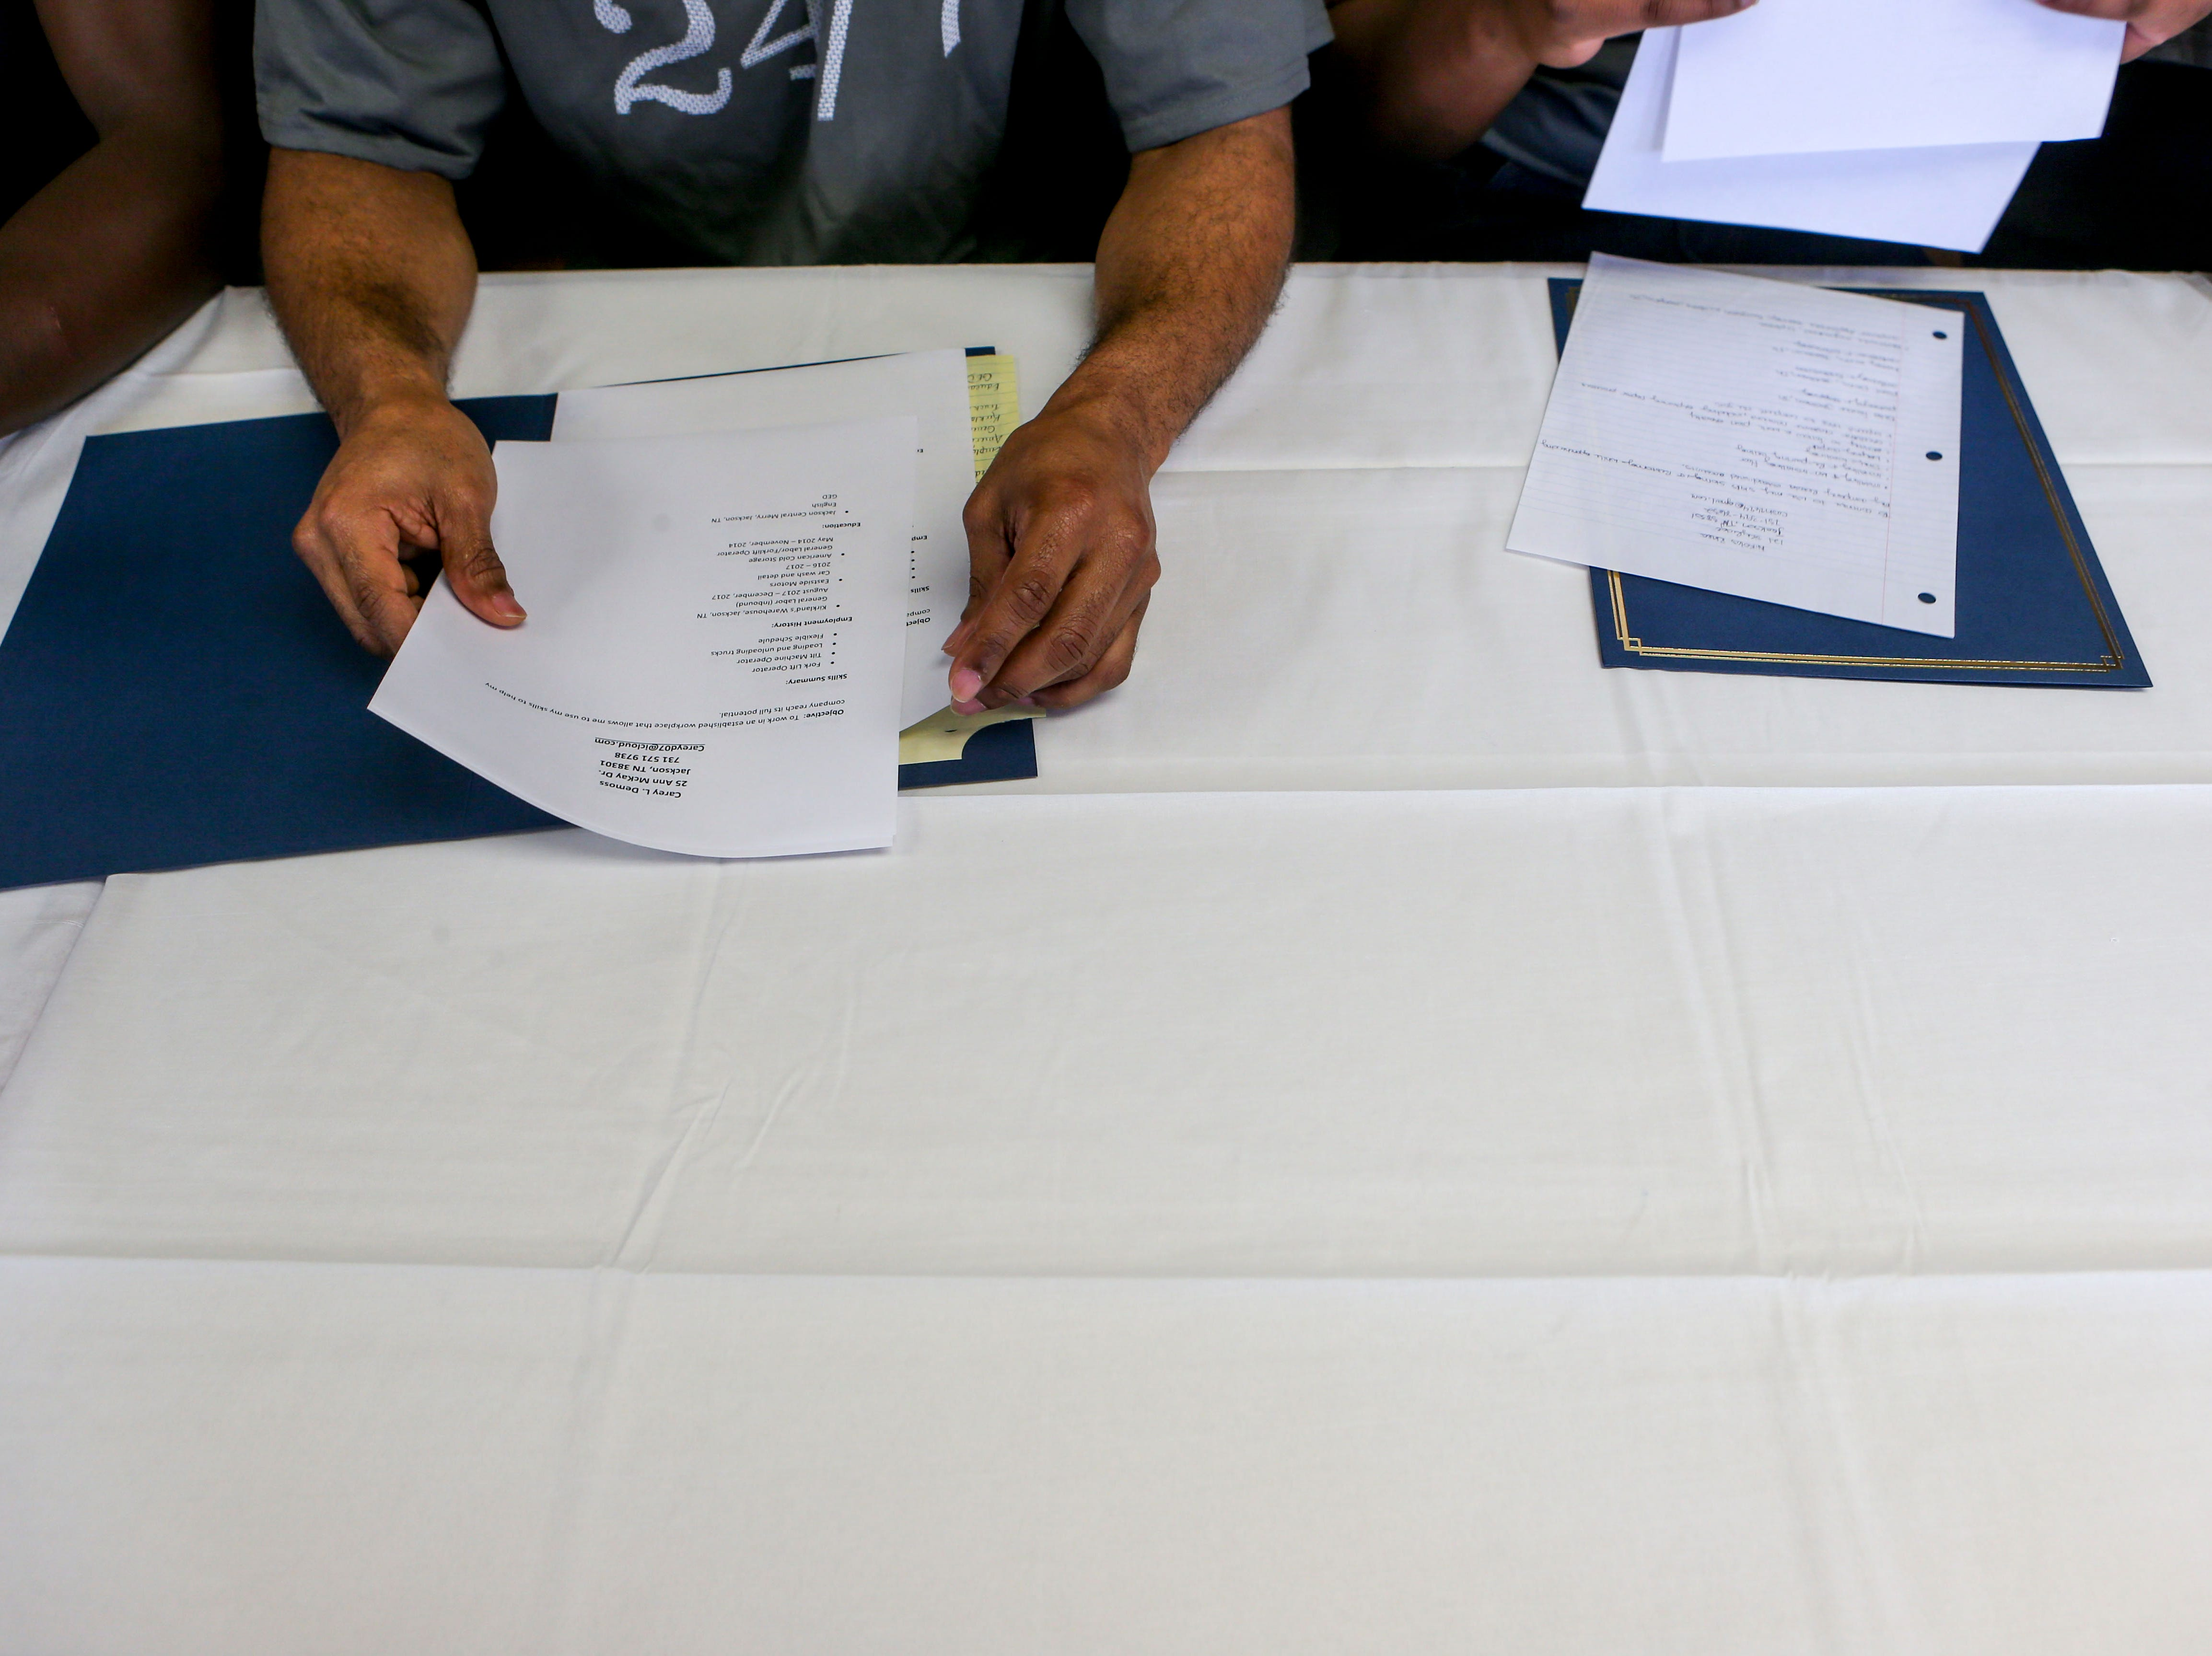 Graduates look over the resumes they were given as a part of the program during a graduation ceremony for the InsideOut Dad program at Madison County Penal Farm in Jackson, Tenn., on Thursday, Oct. 4, 2018.